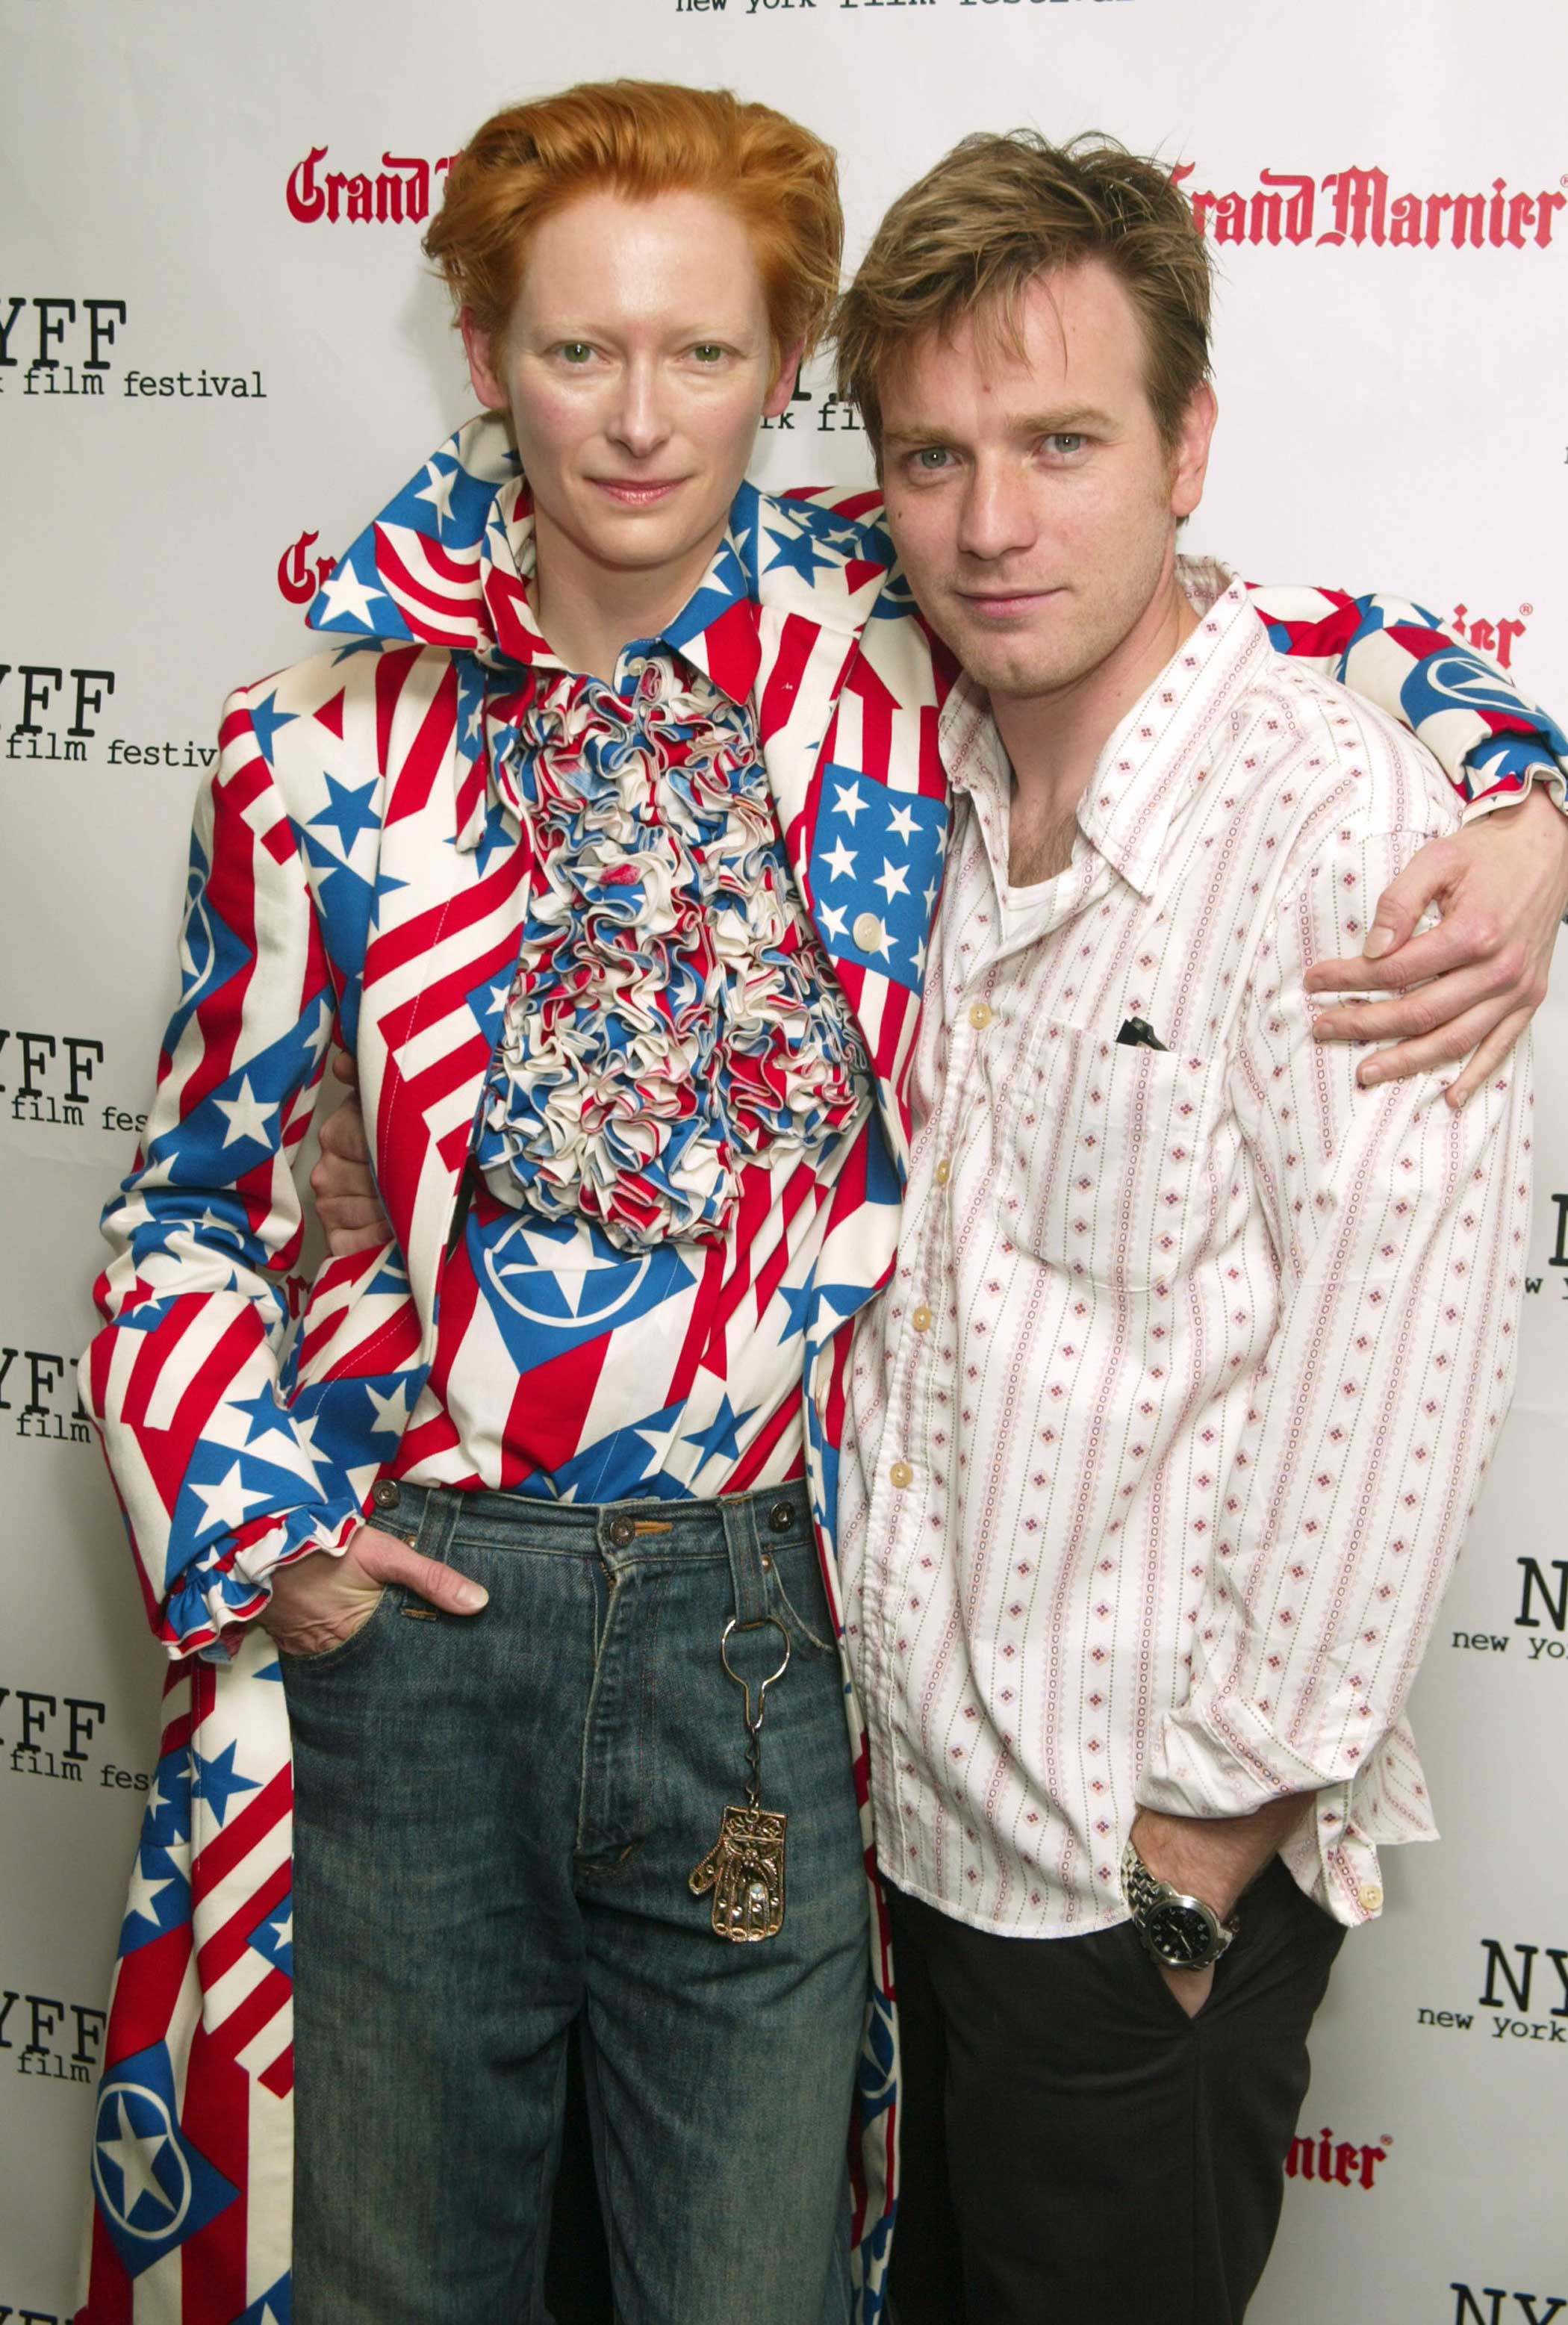 Tilda Swinton and Ewan McGregor during the Young Adam premiere in New York City on Oct. 8, 2003.